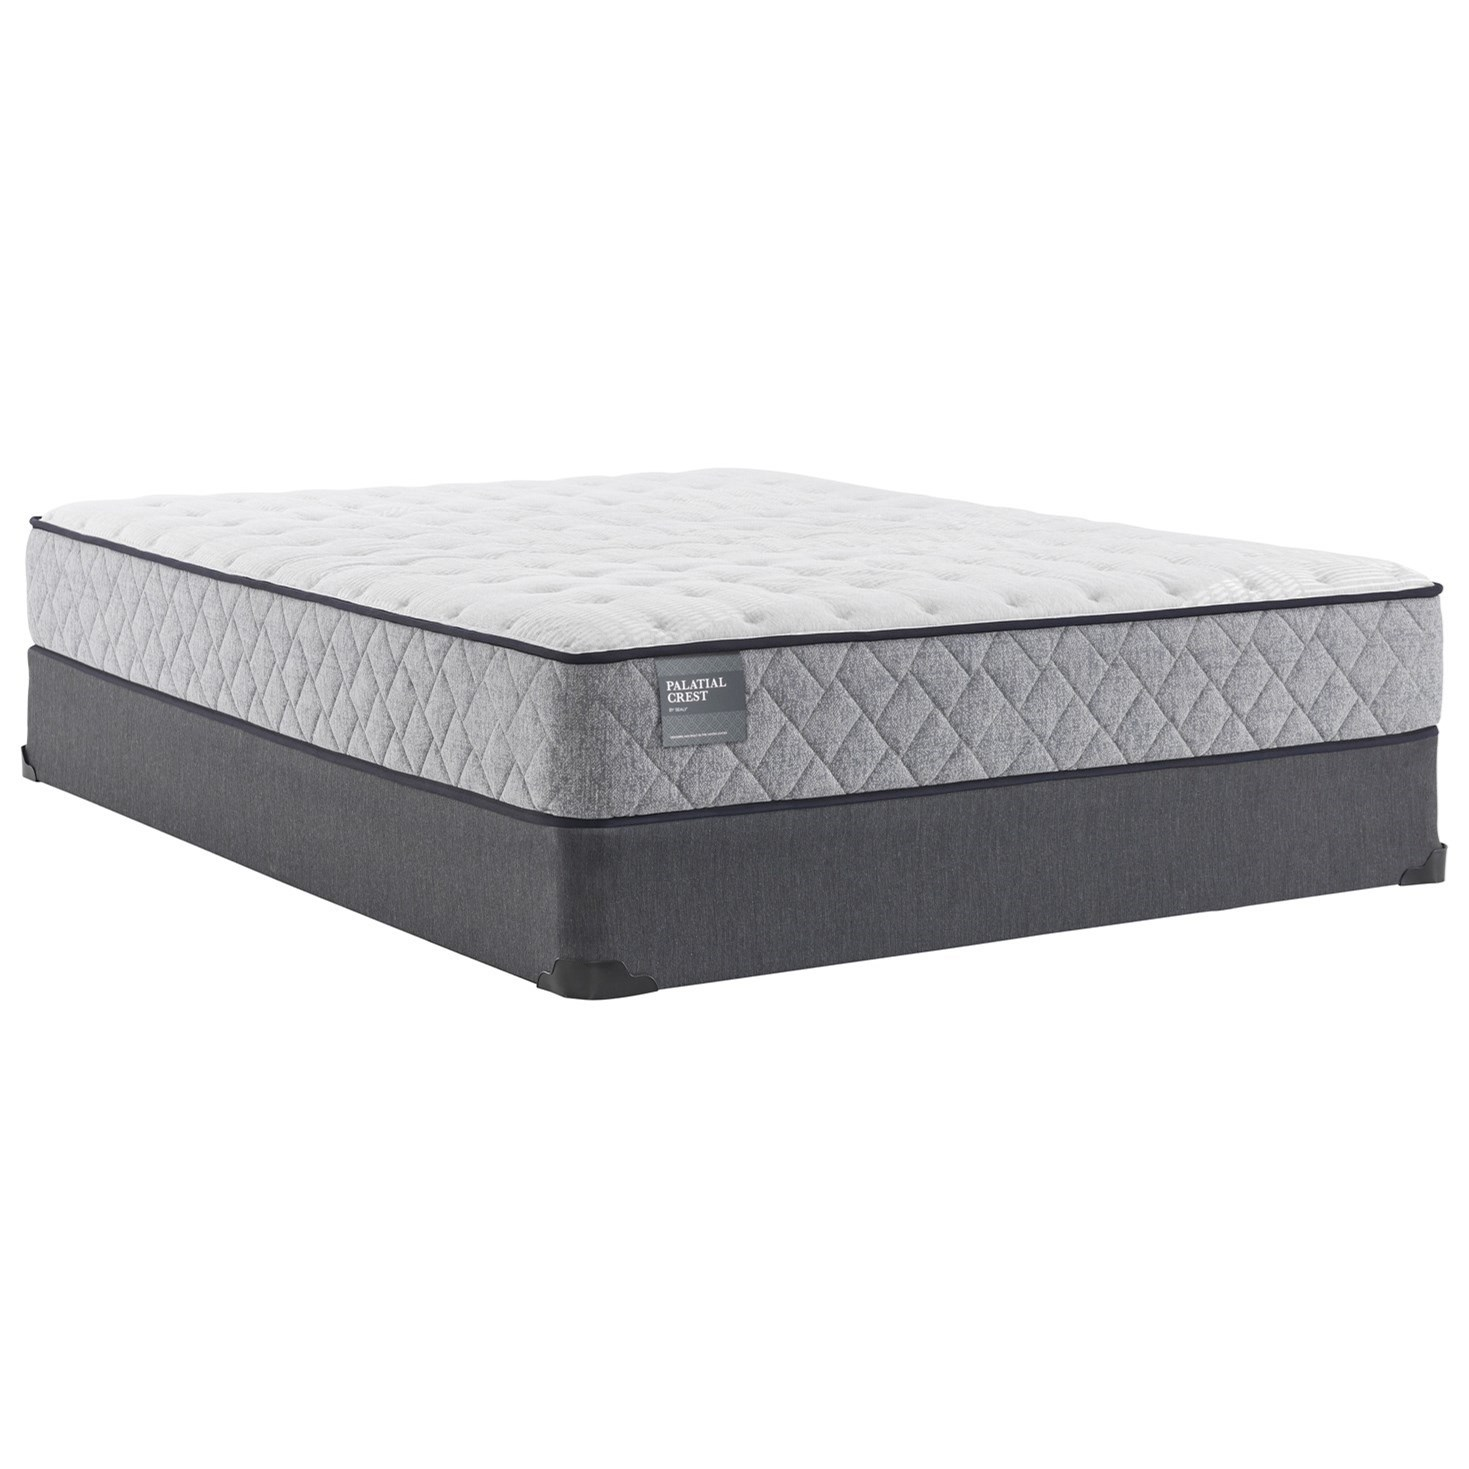 "Queens Guard Firm TT B2 Twin 10"" Firm Innerspring Mattress Set by Sealy at Lagniappe Home Store"